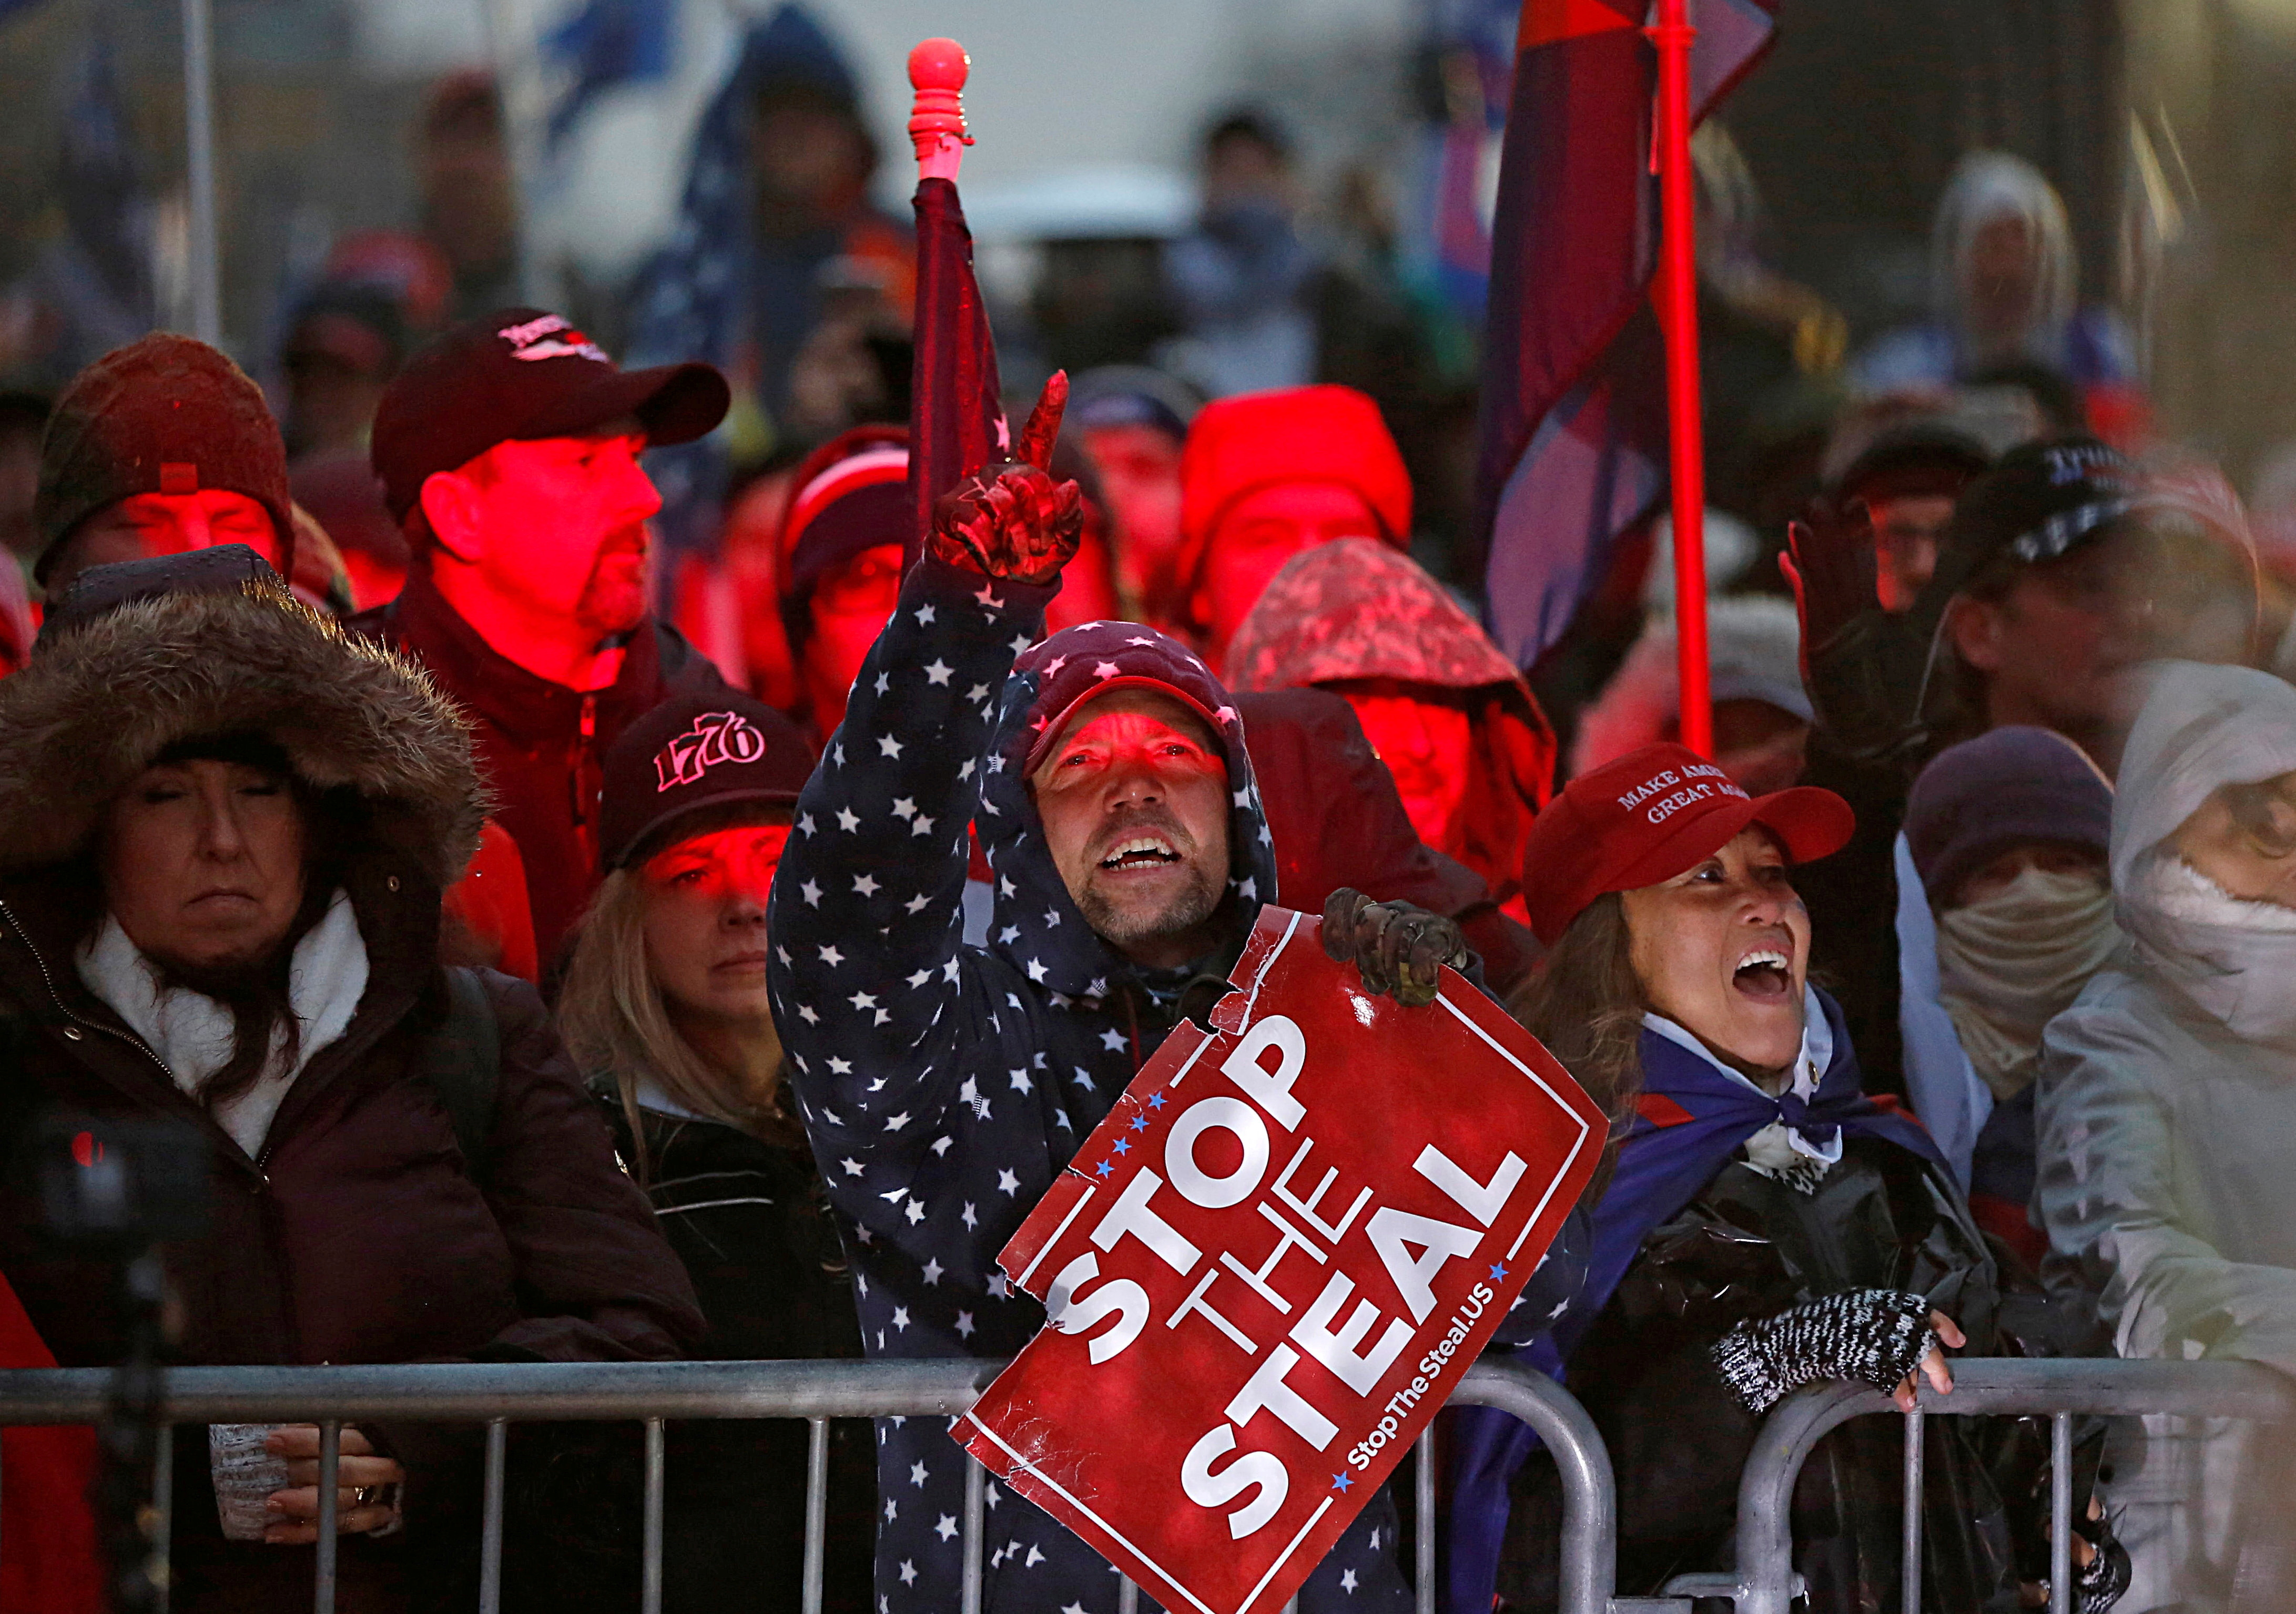 Supporters of U.S. President Donald Trump gather at a rally at Freedom Plaza, ahead of the U.S. Congress certification of the November 2020 election results, during protests in Washington, U.S., January 5, 2021. REUTERS/Jim Urquhart/File Photo